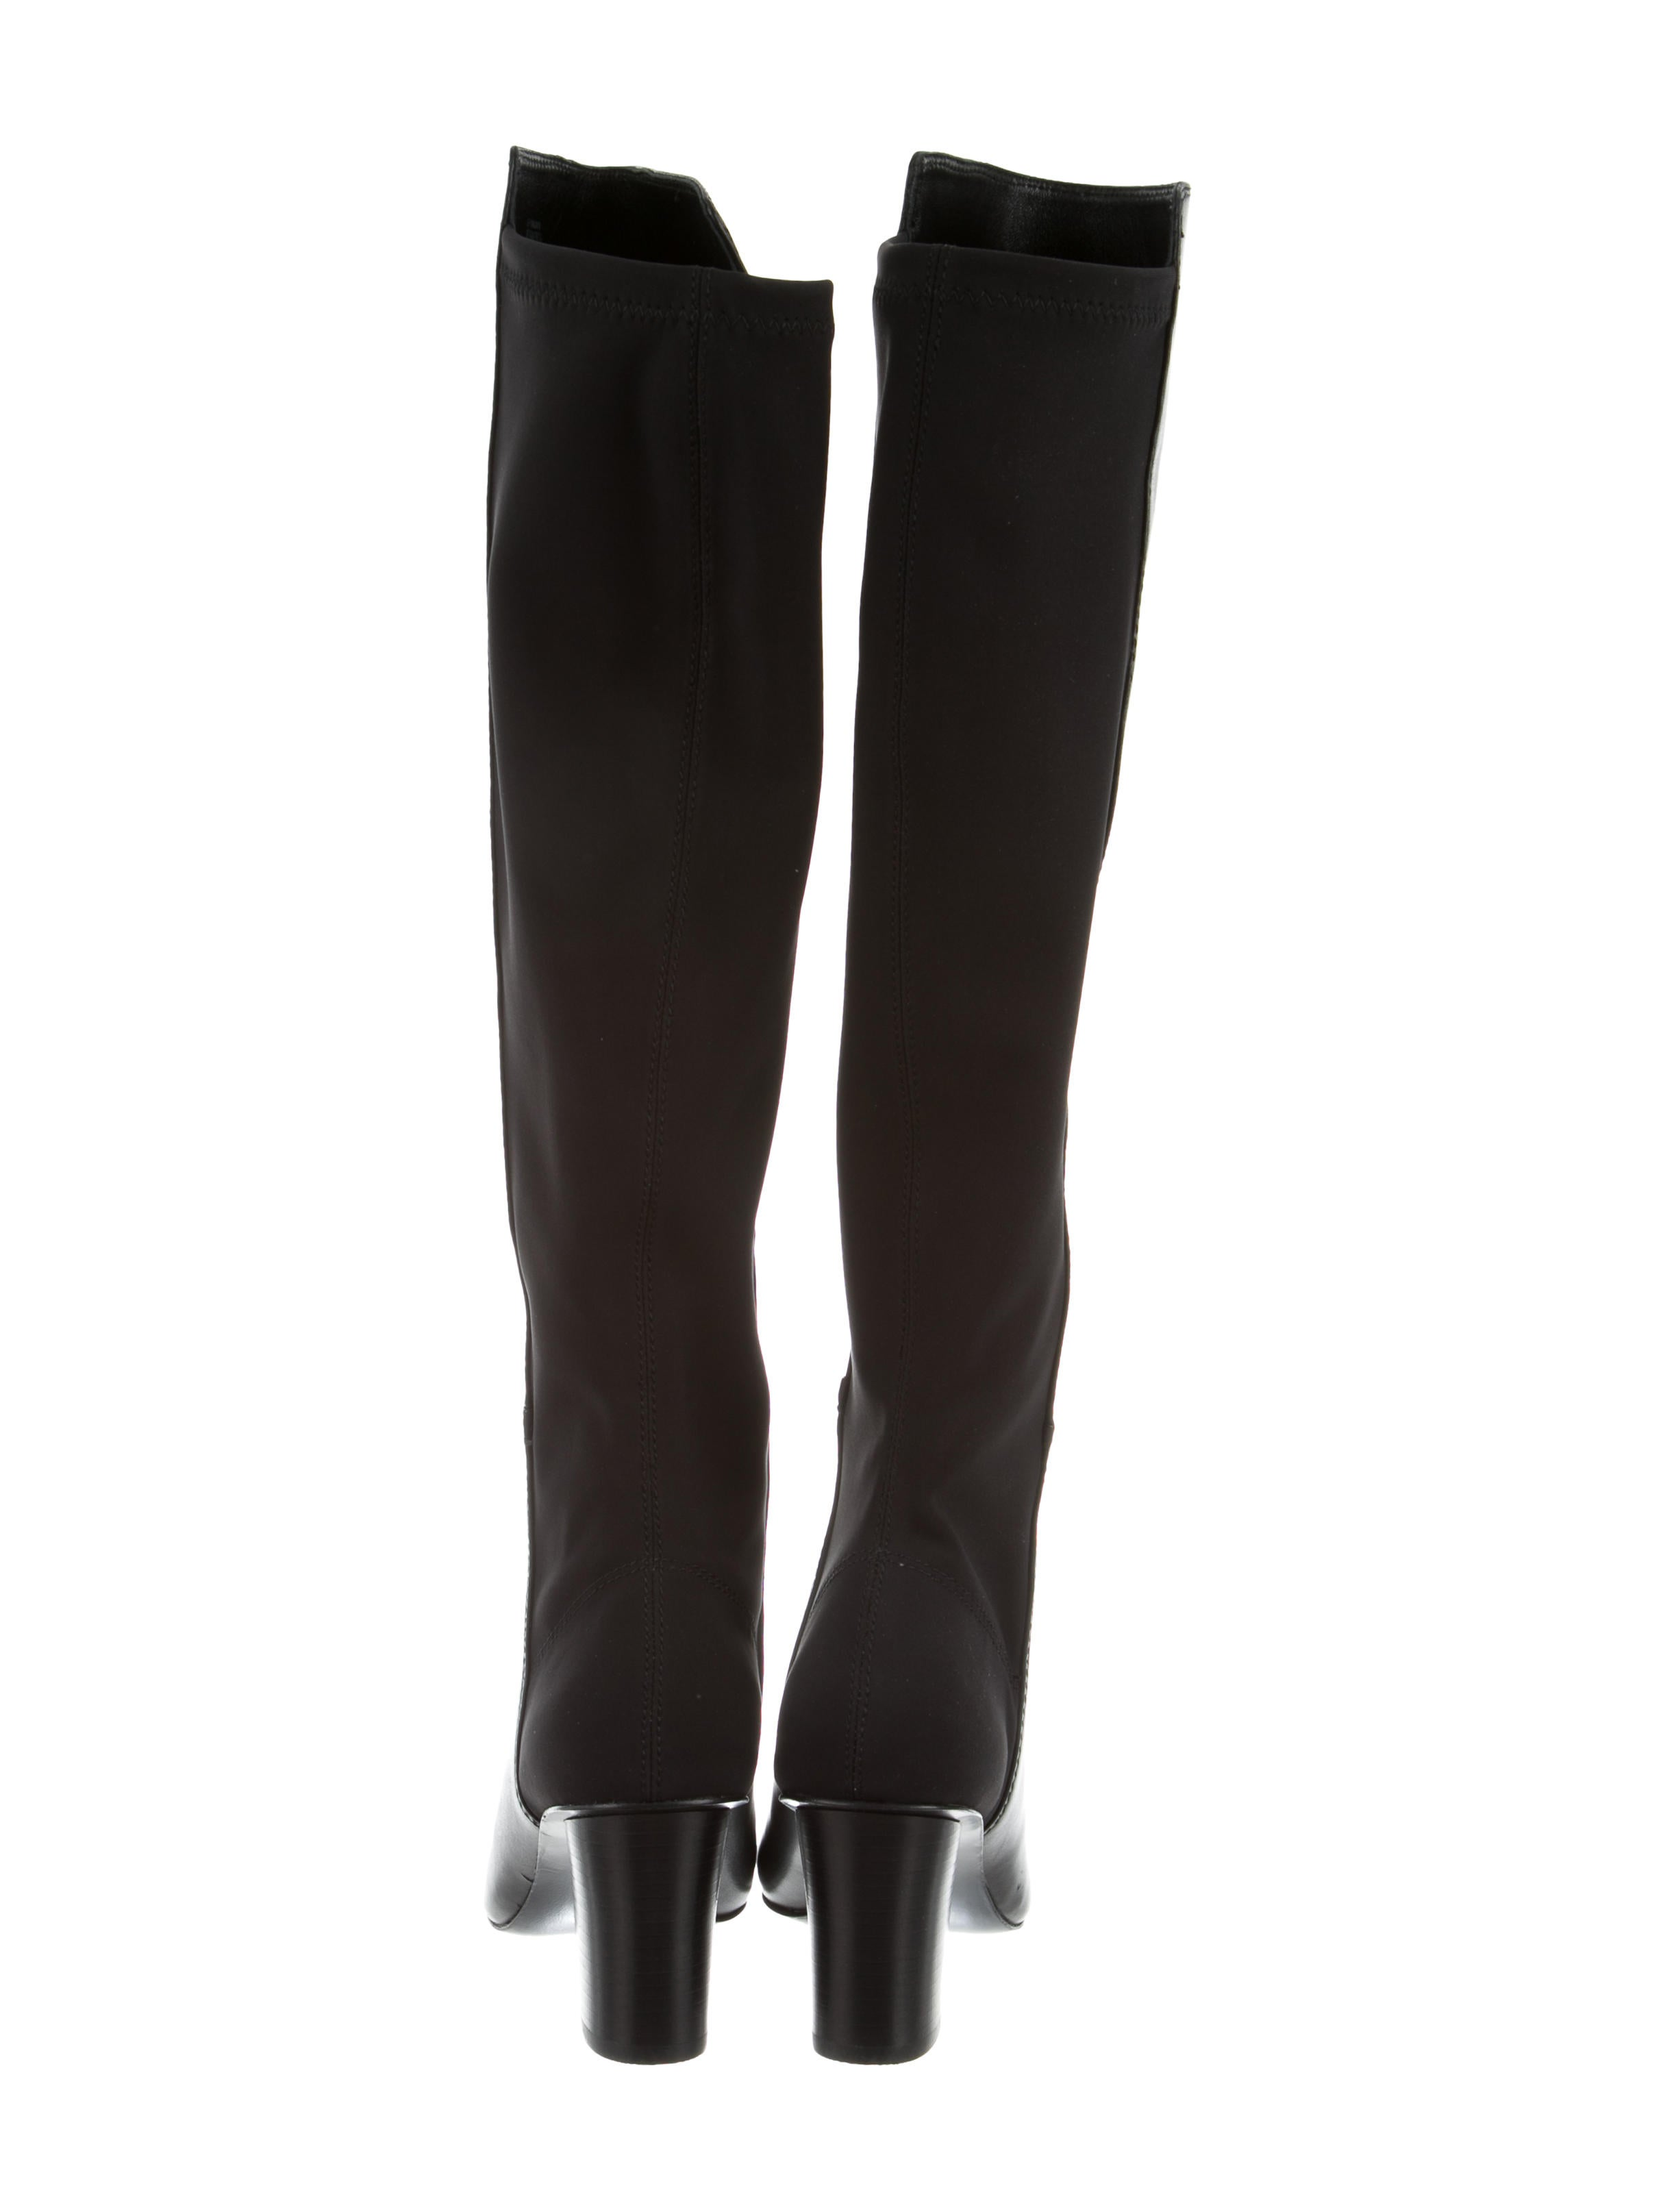 Lafayette 148 Sanjaya Knee-High Boots w/ Tags outlet under $60 free shipping recommend qR5Fe